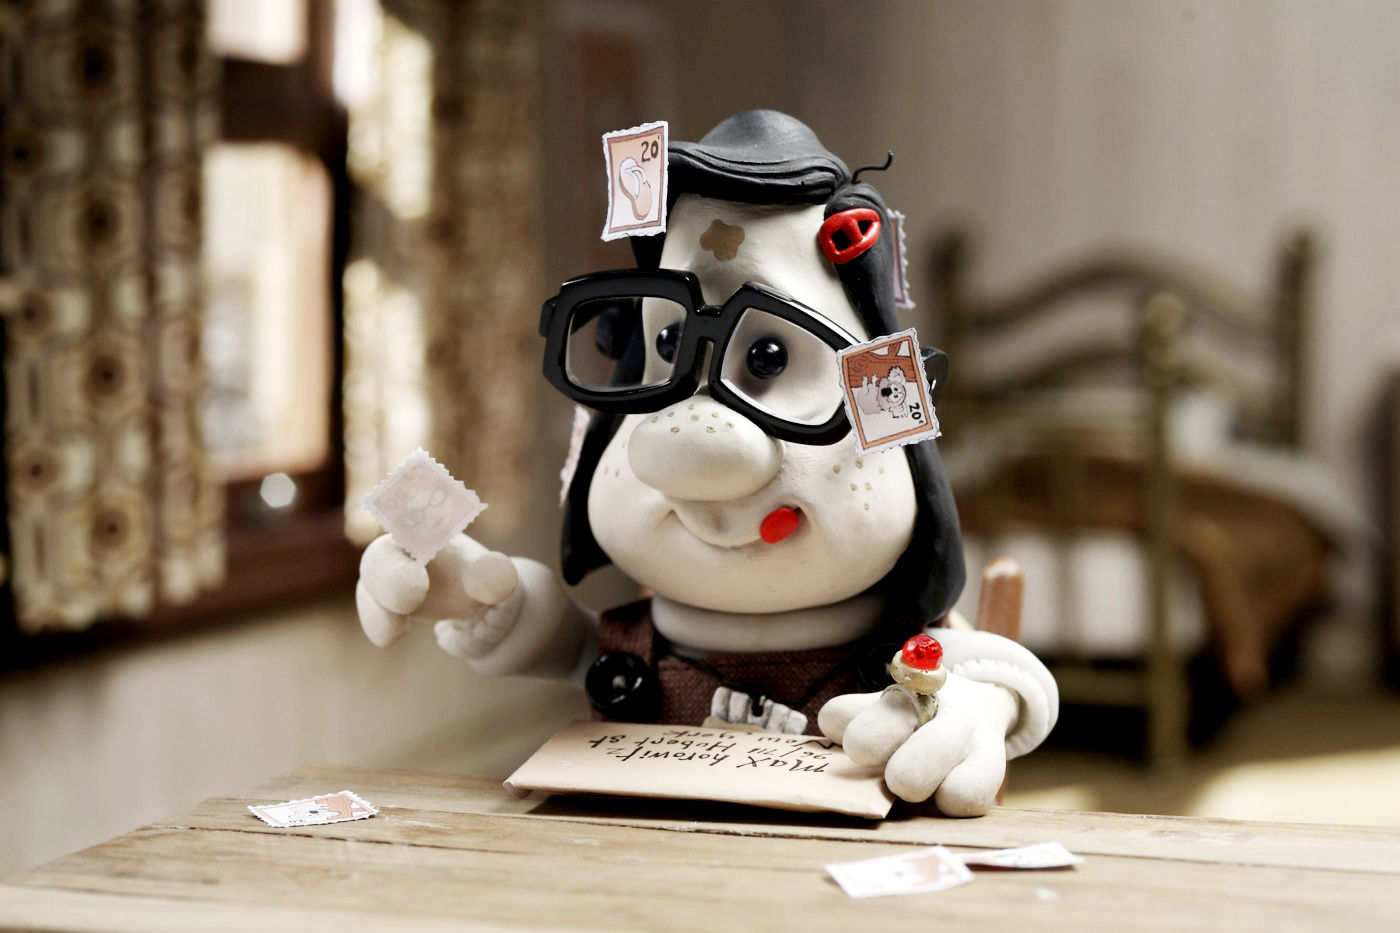 Mary And Max Review An Underrated Beauty Of A Film The Curb